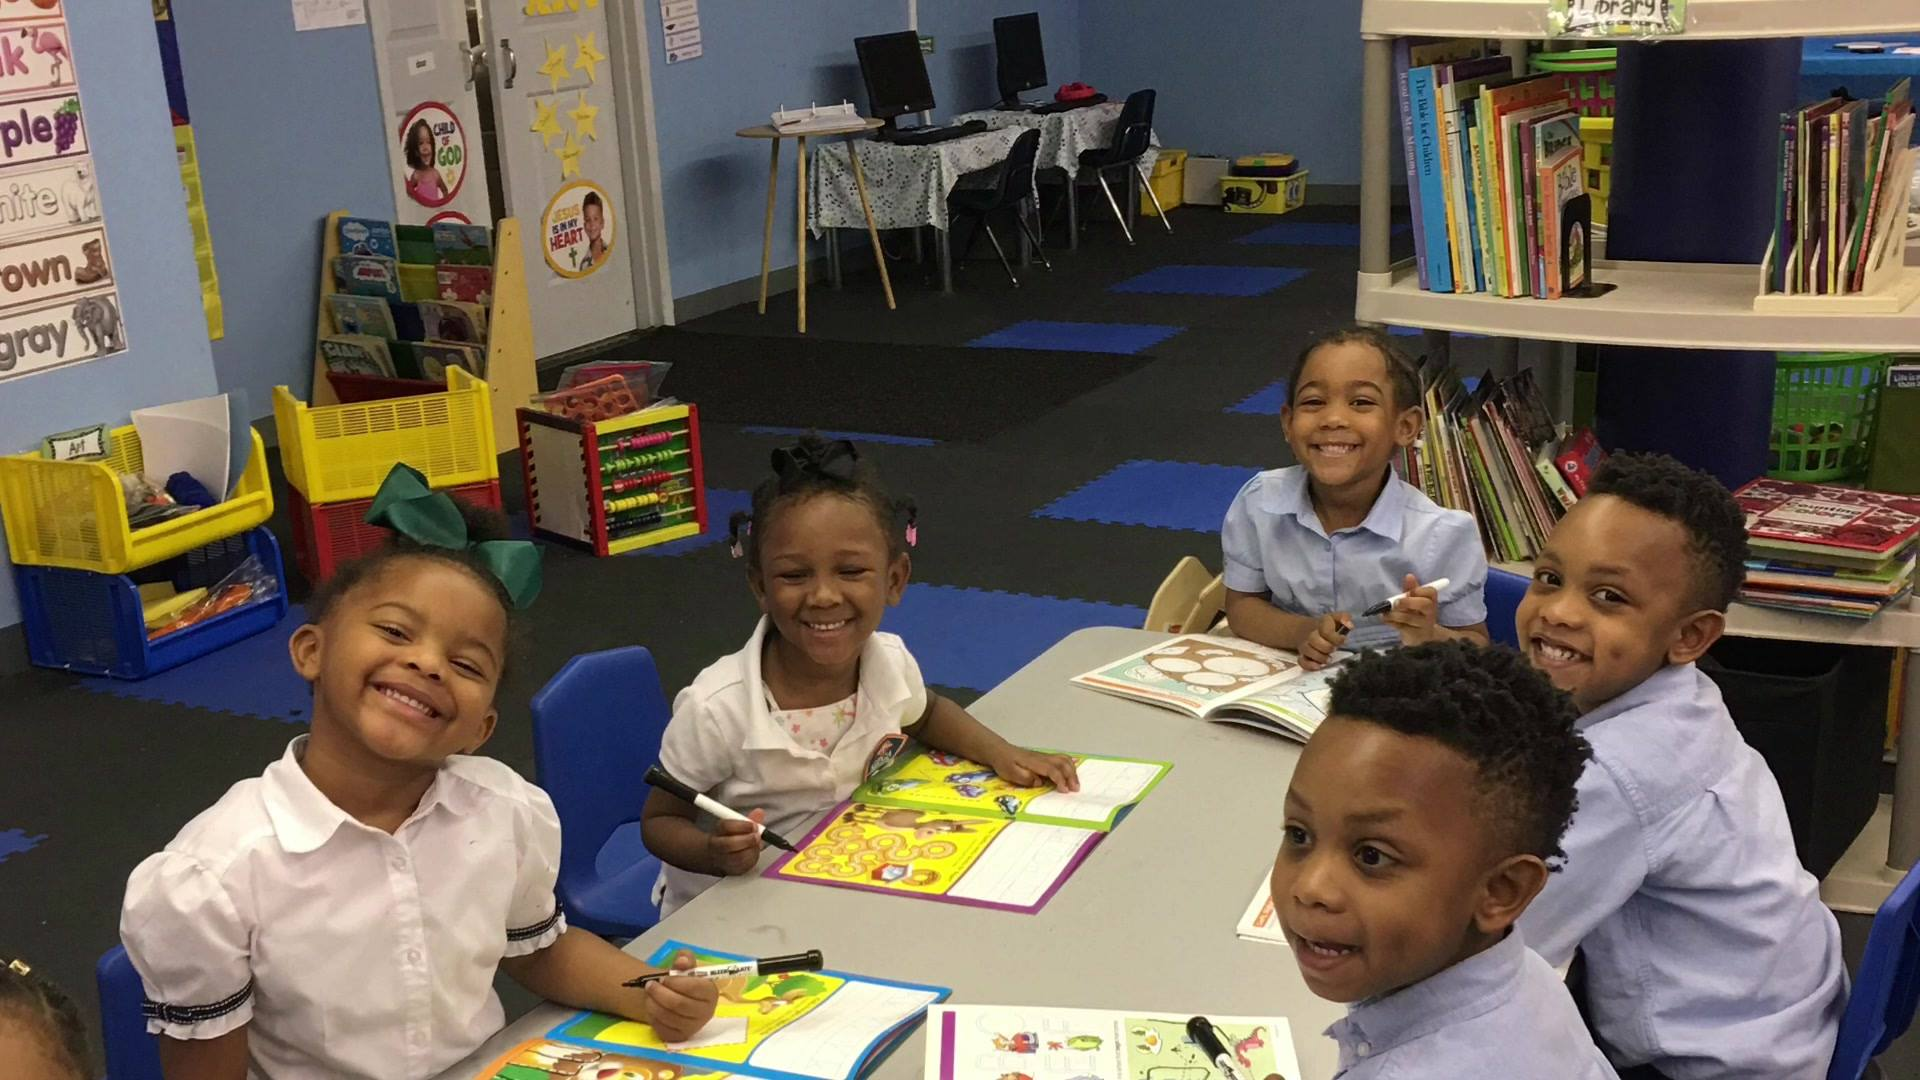 Watch this trailer of Greater Christian Academy Kindergarten 3&4 year old class growth through the year!  Greater Faith Christian Academy now enrolling. Website www.apeducation.org.  #WatchMe.  #More2Come.